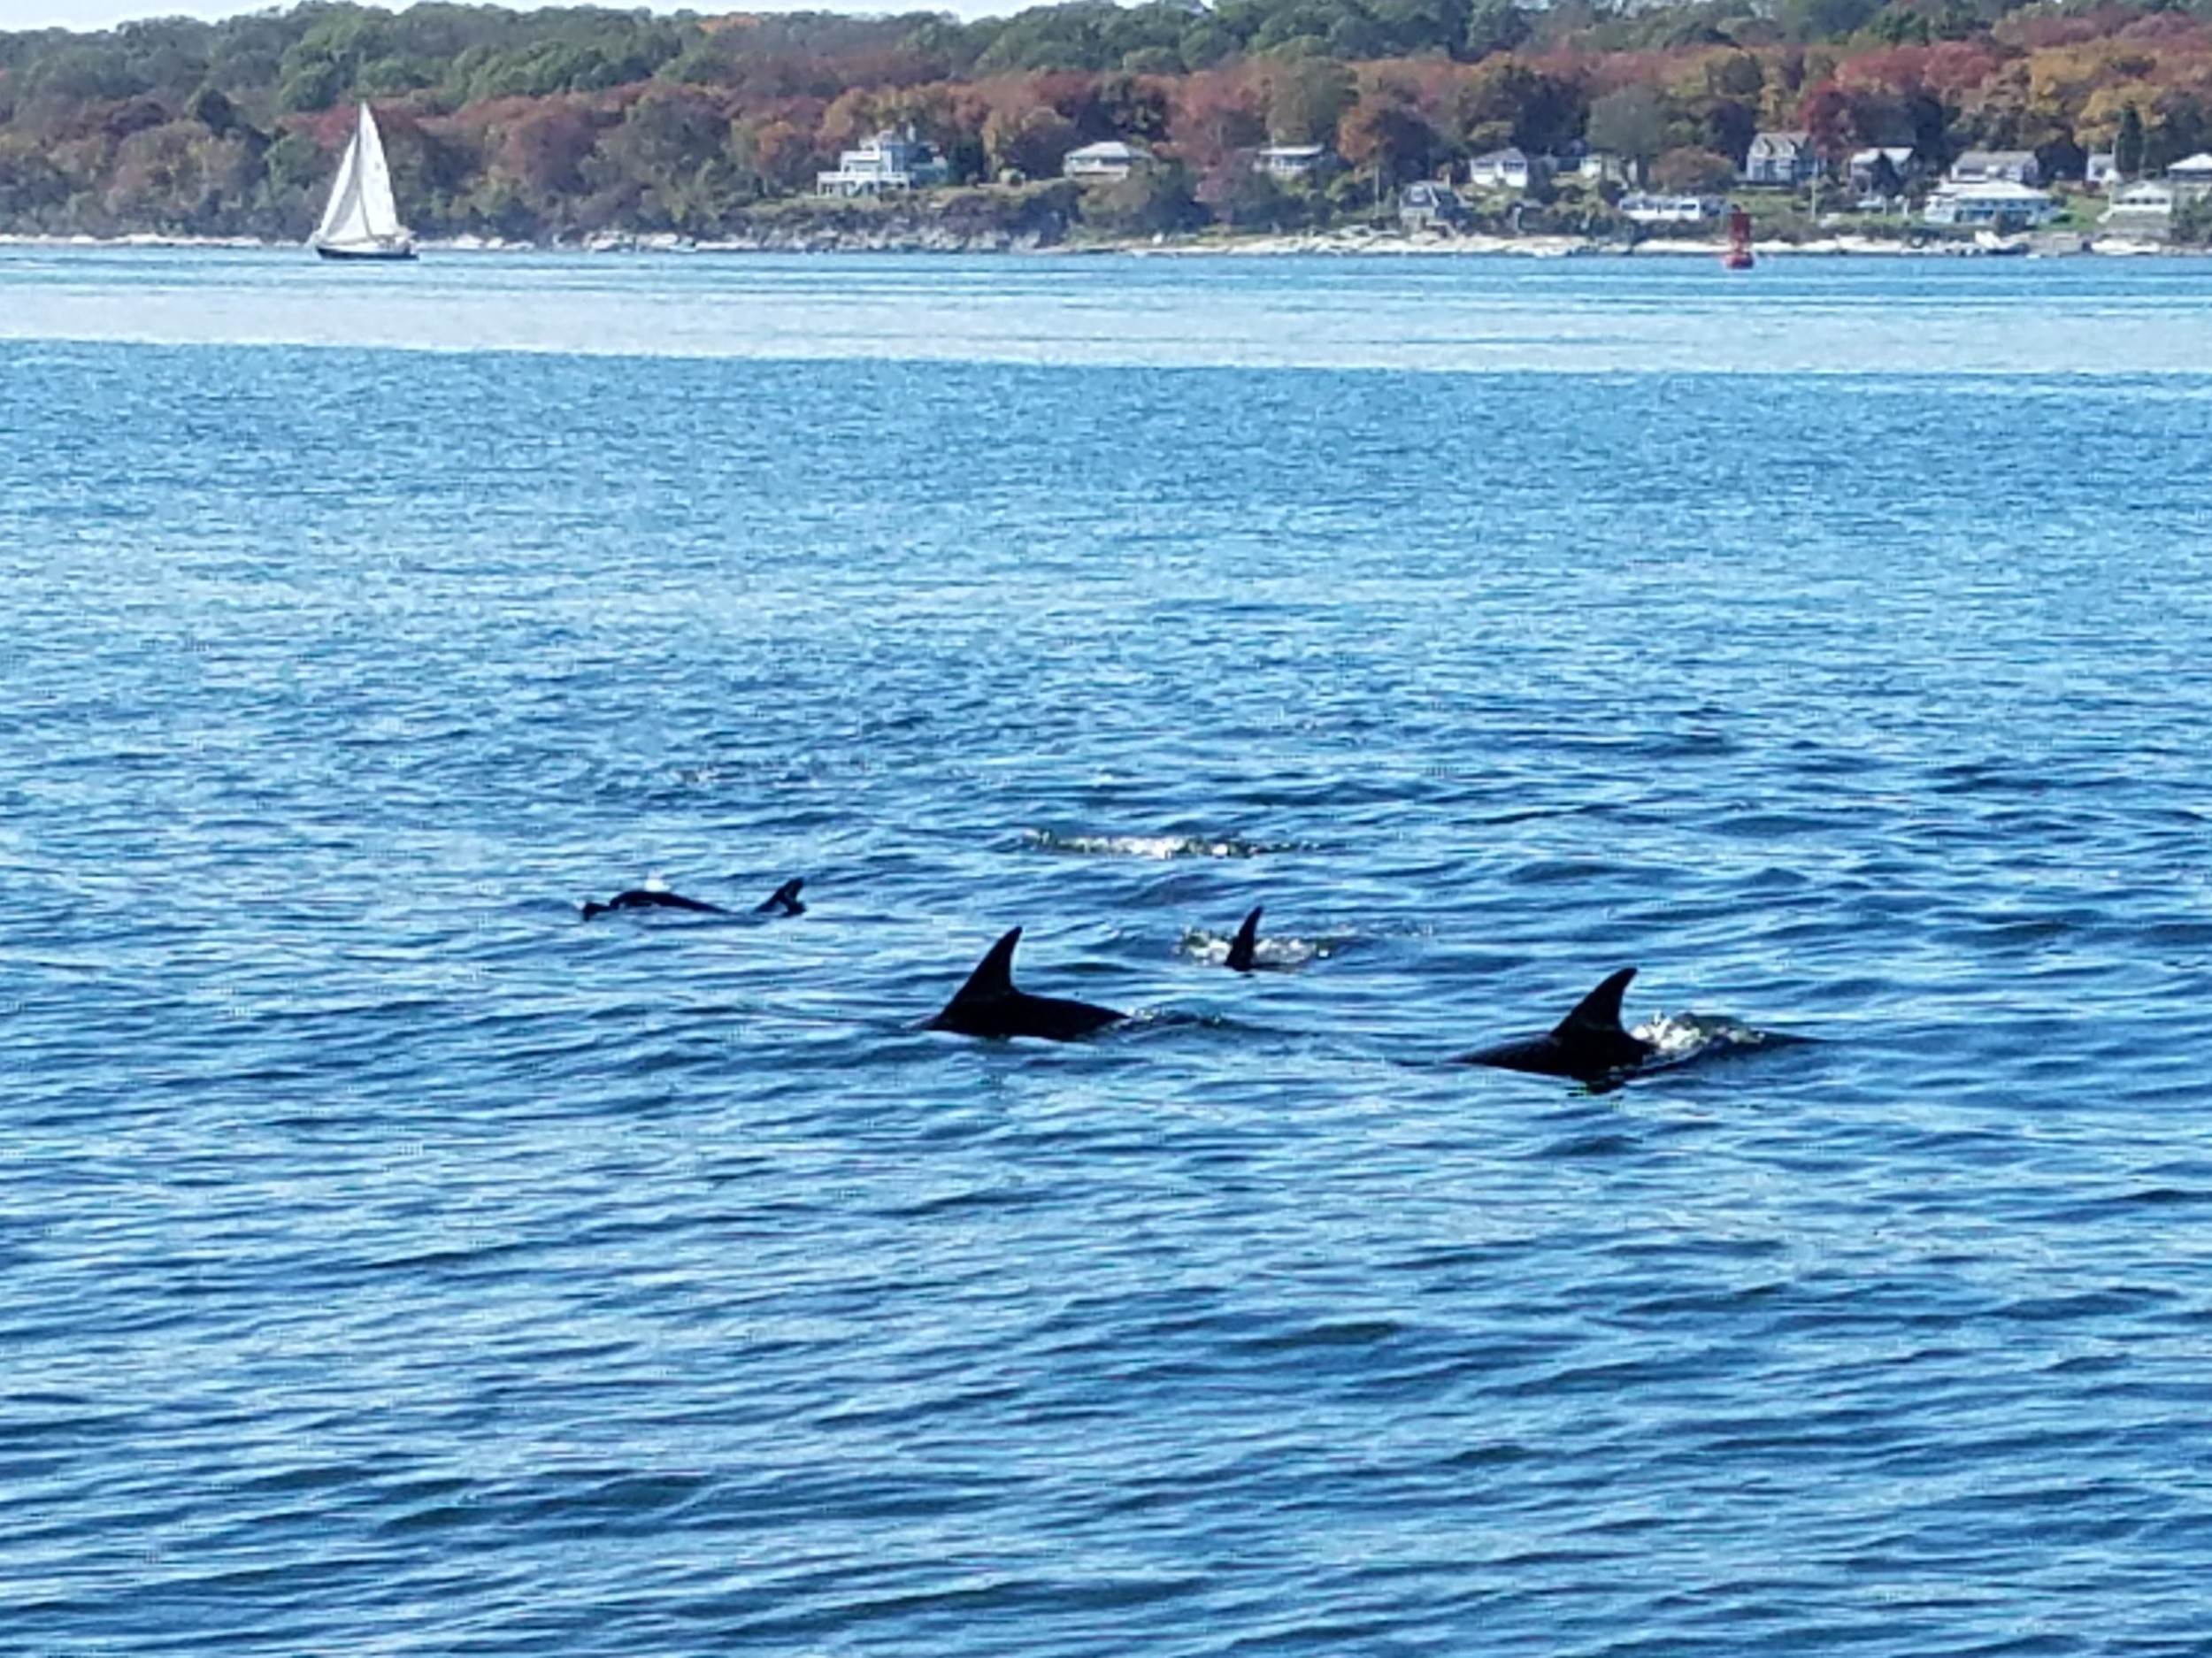 Angler Tom Poirier came across 12 to 15 dolphins Sunday in the East Passage between Prudence and Aquidneck Islands heading south toward the Newport Bridge.